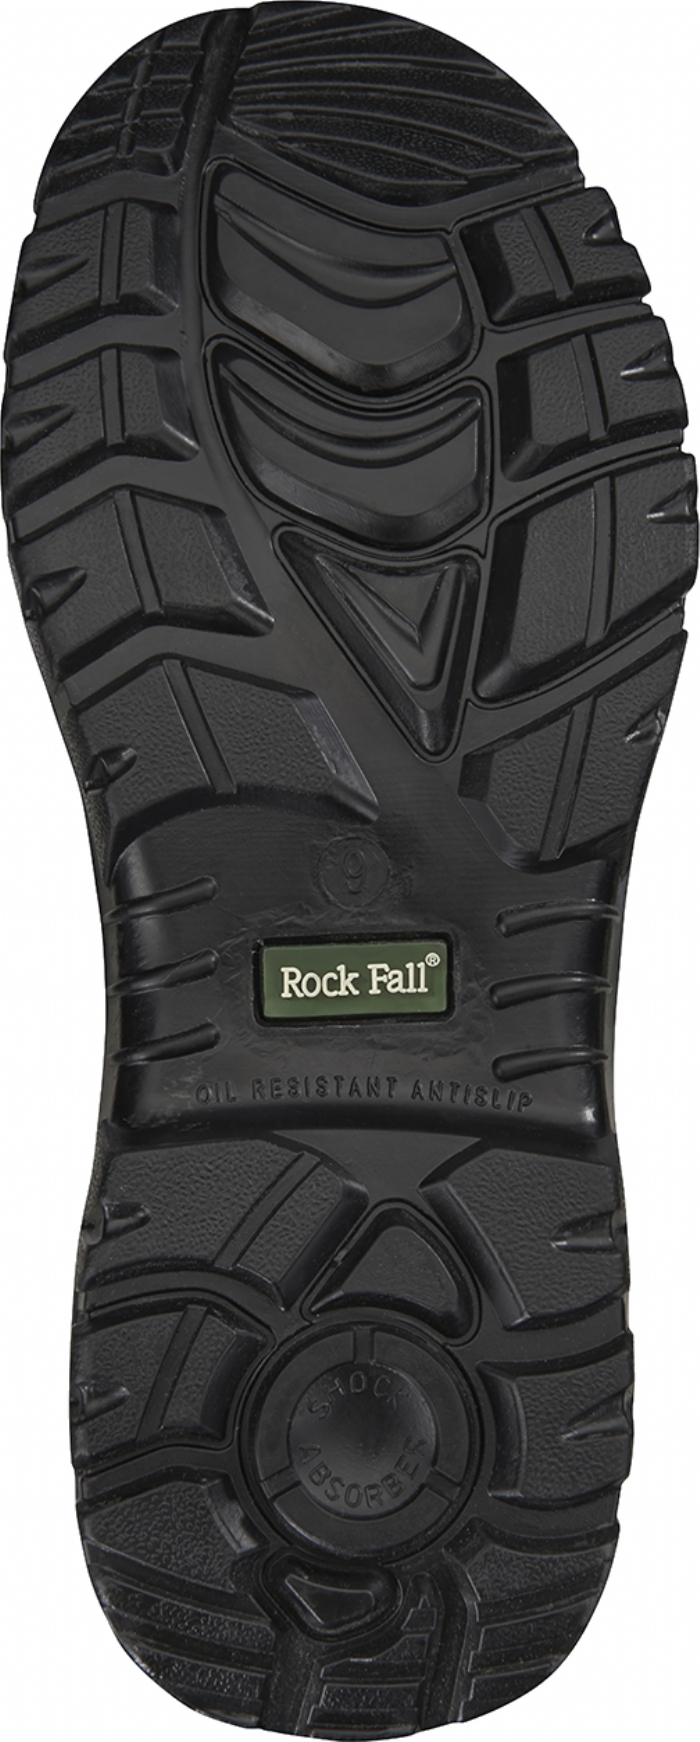 Rockfall  Jet RF222 Fibreglass Toecap Safety Boot